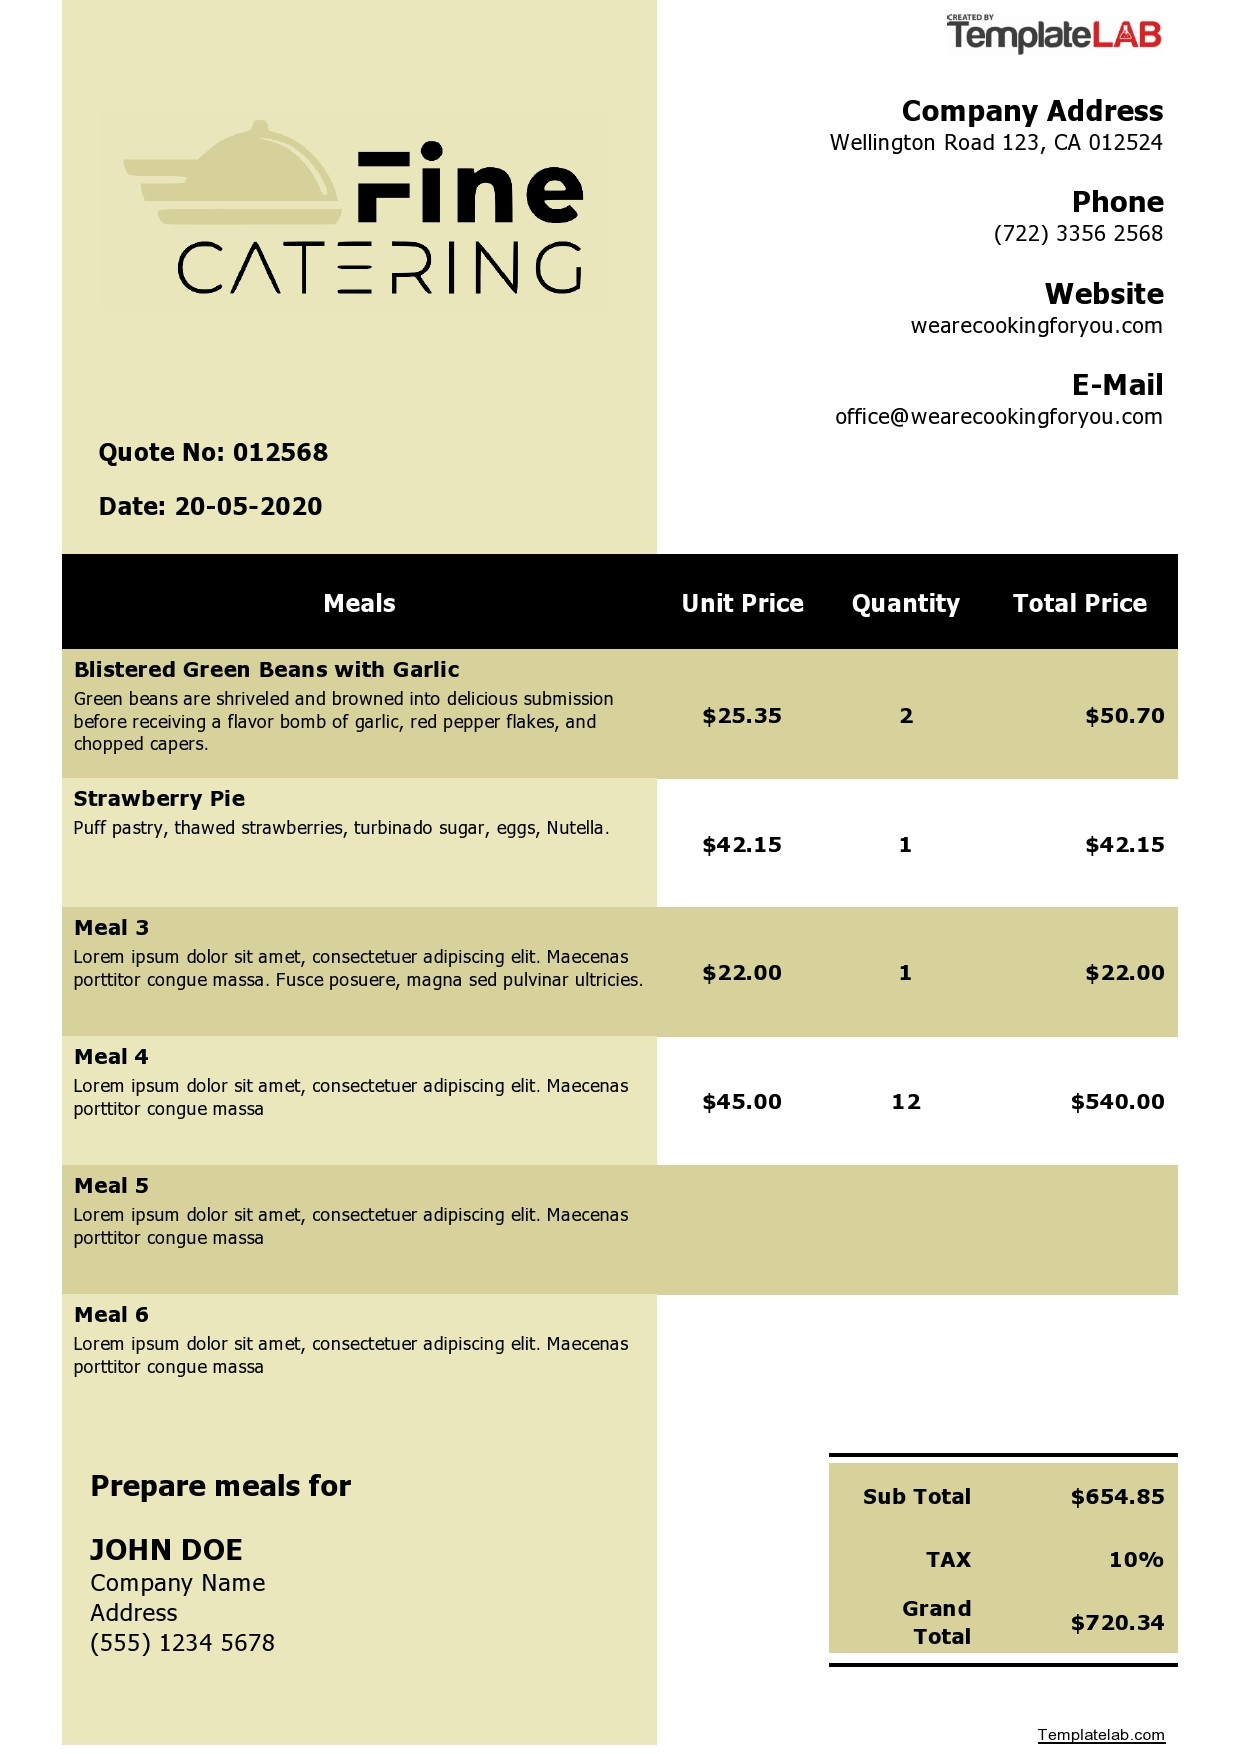 Free Catering Quote Template - TemplateLab.com